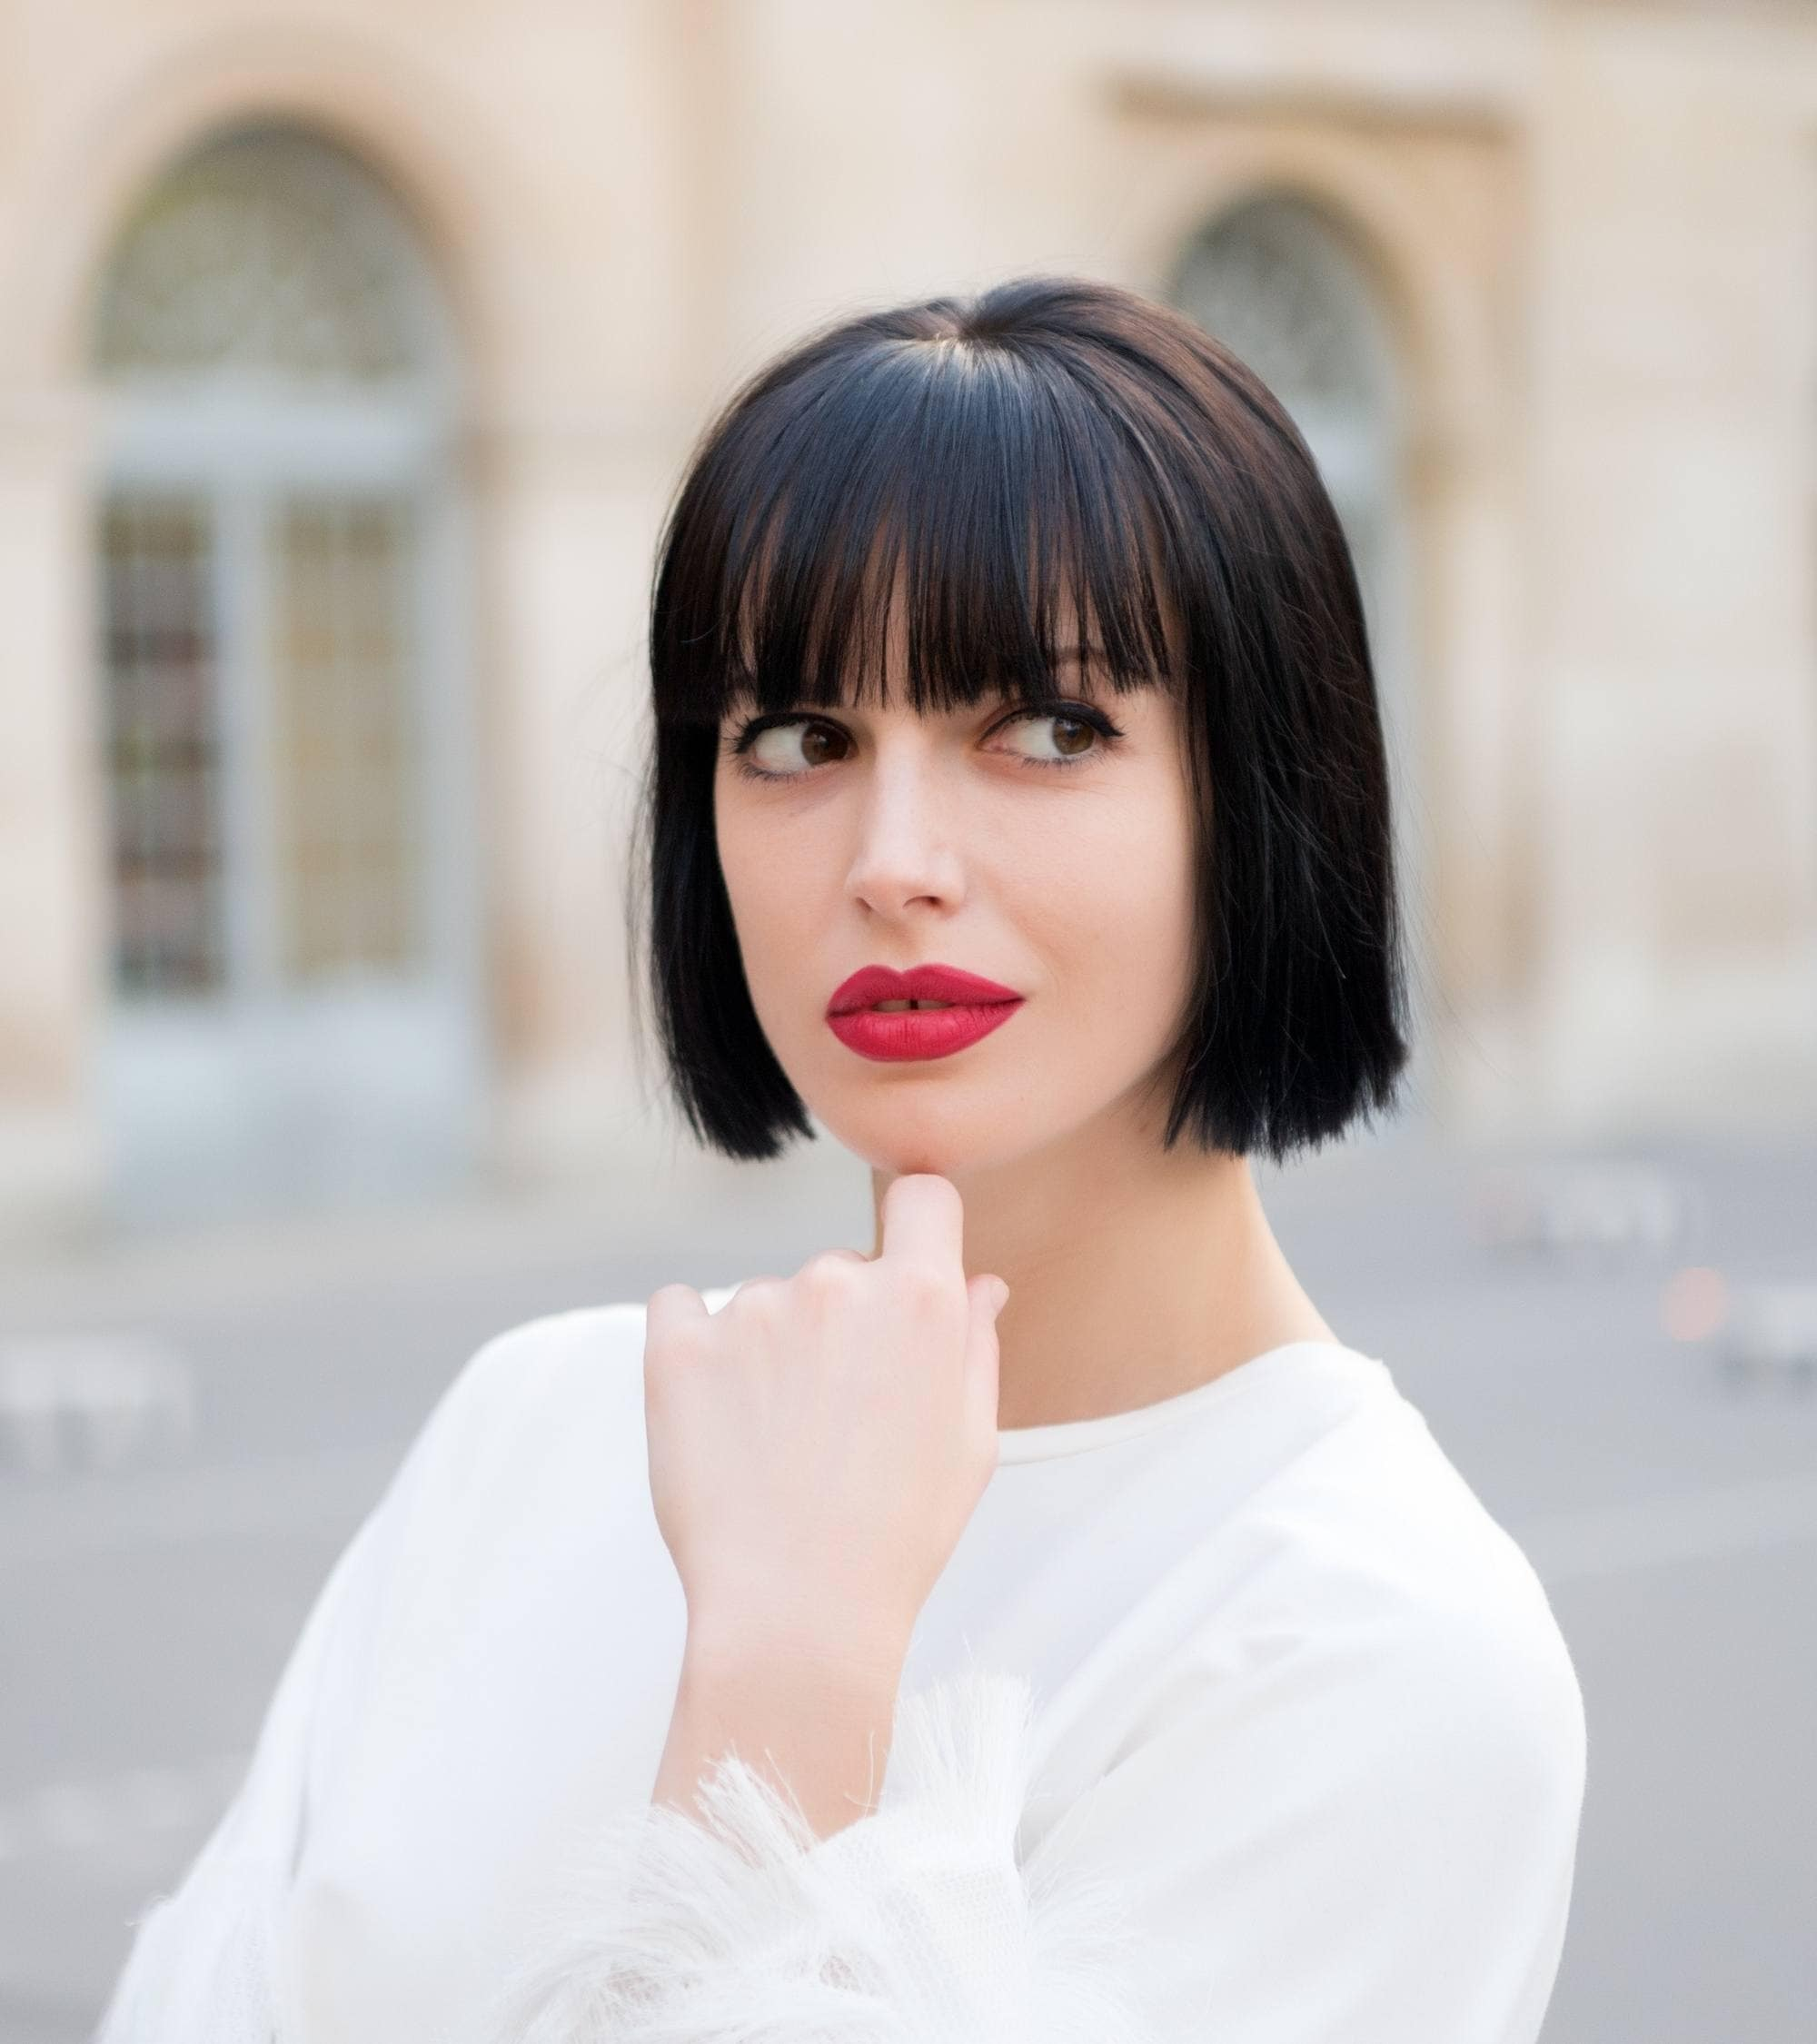 Styling blunt bangs: Closeup shot of a woman with short black hair with blunt bangs wearing a white top outdoors